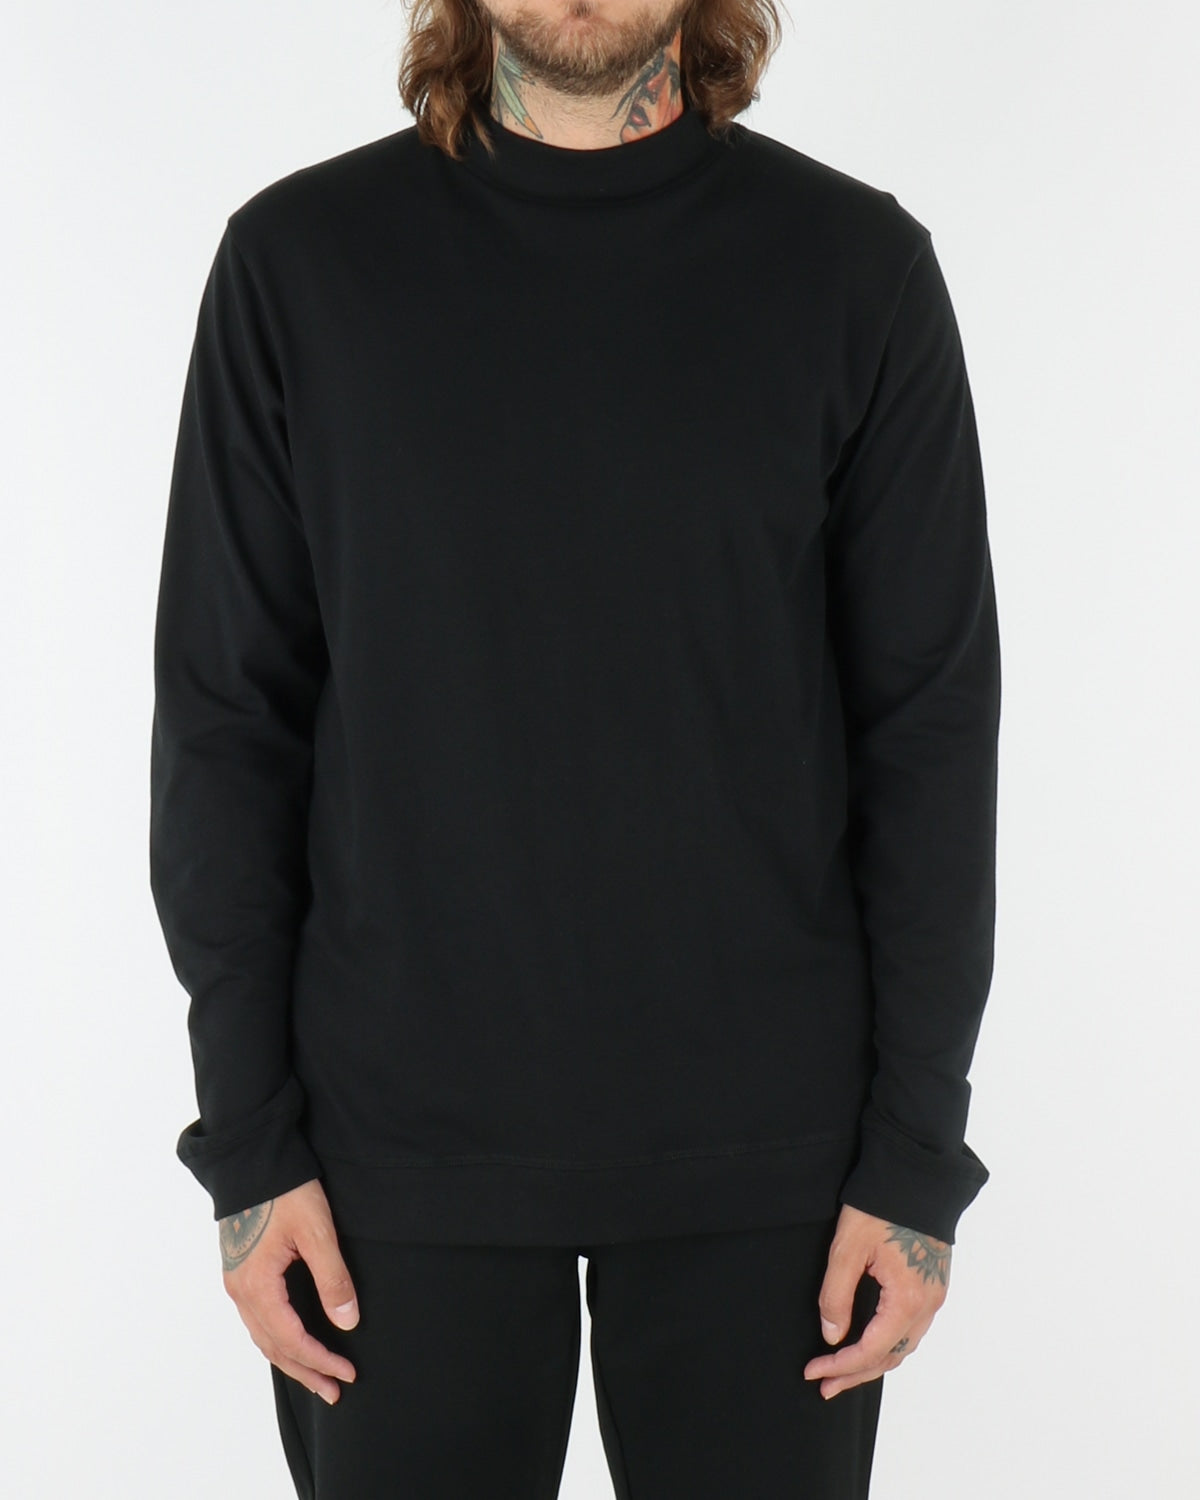 libertine libertine_murray_longsleeve_black_view_1_2